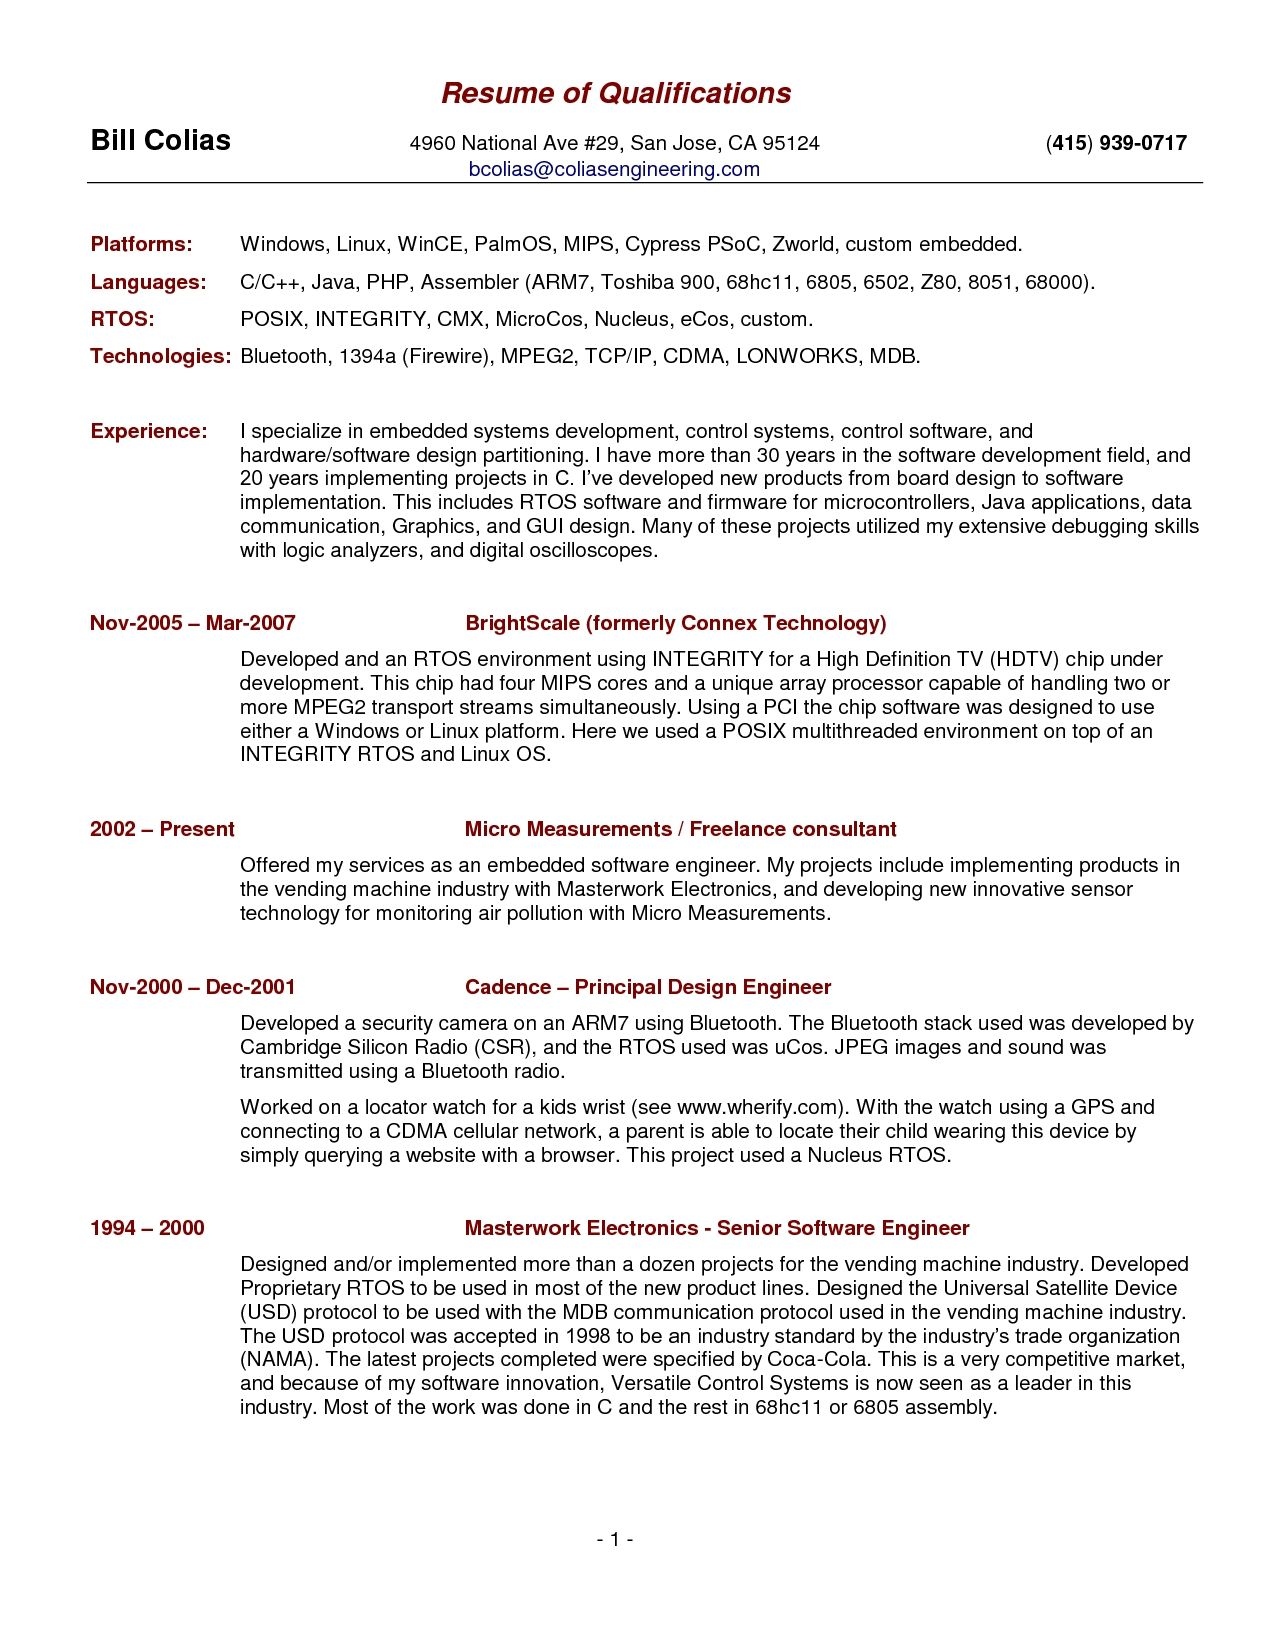 qualifications for a resume examples 7f8ea3a2a new resume skills and qualifications examples - Example Qualifications For Resume